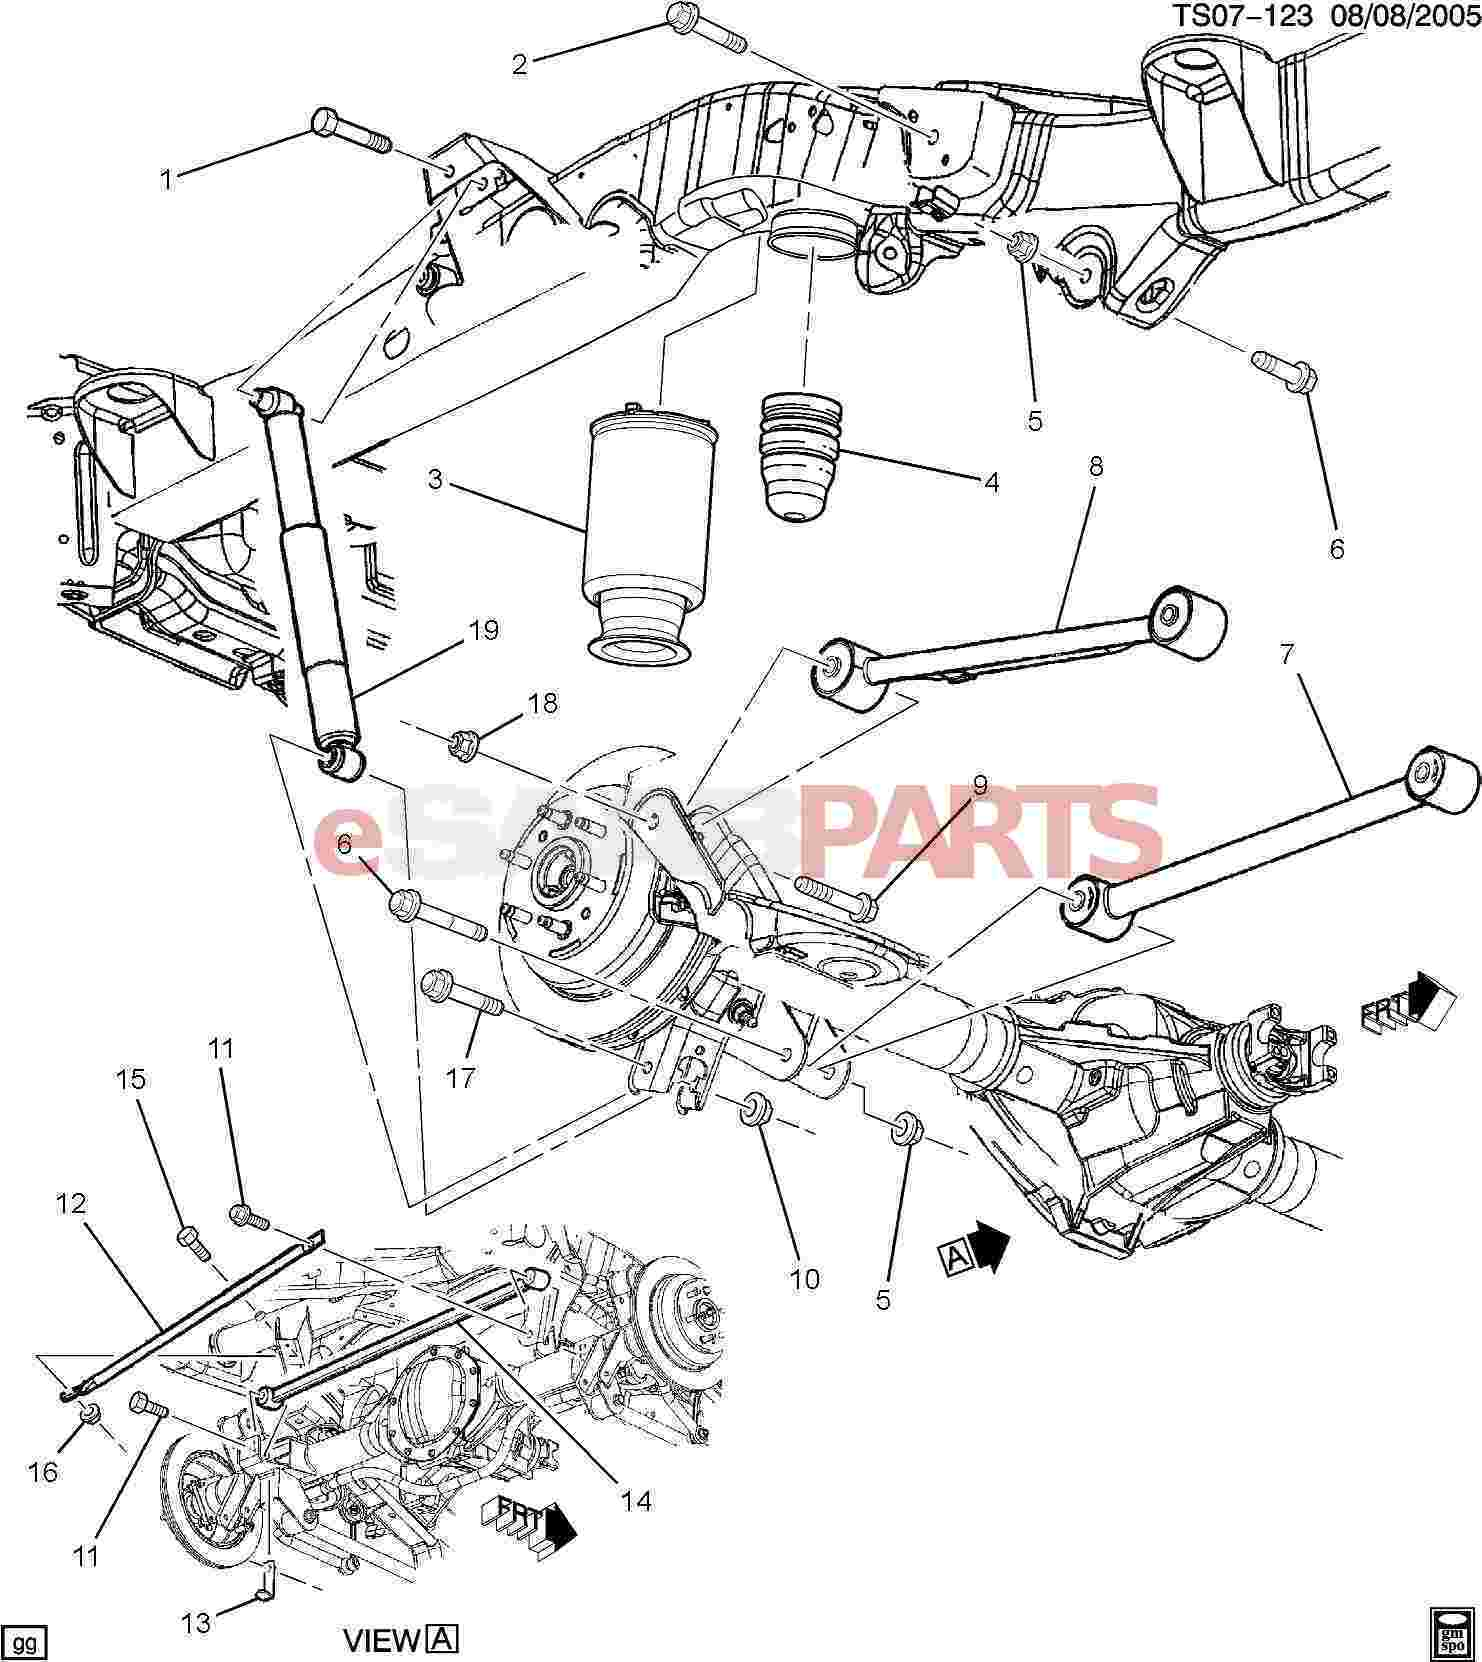 11516382 saab nut genuine saab parts from esaabparts com rh esaabparts com saab 9-3 rear suspension diagram saab 93 suspension diagram